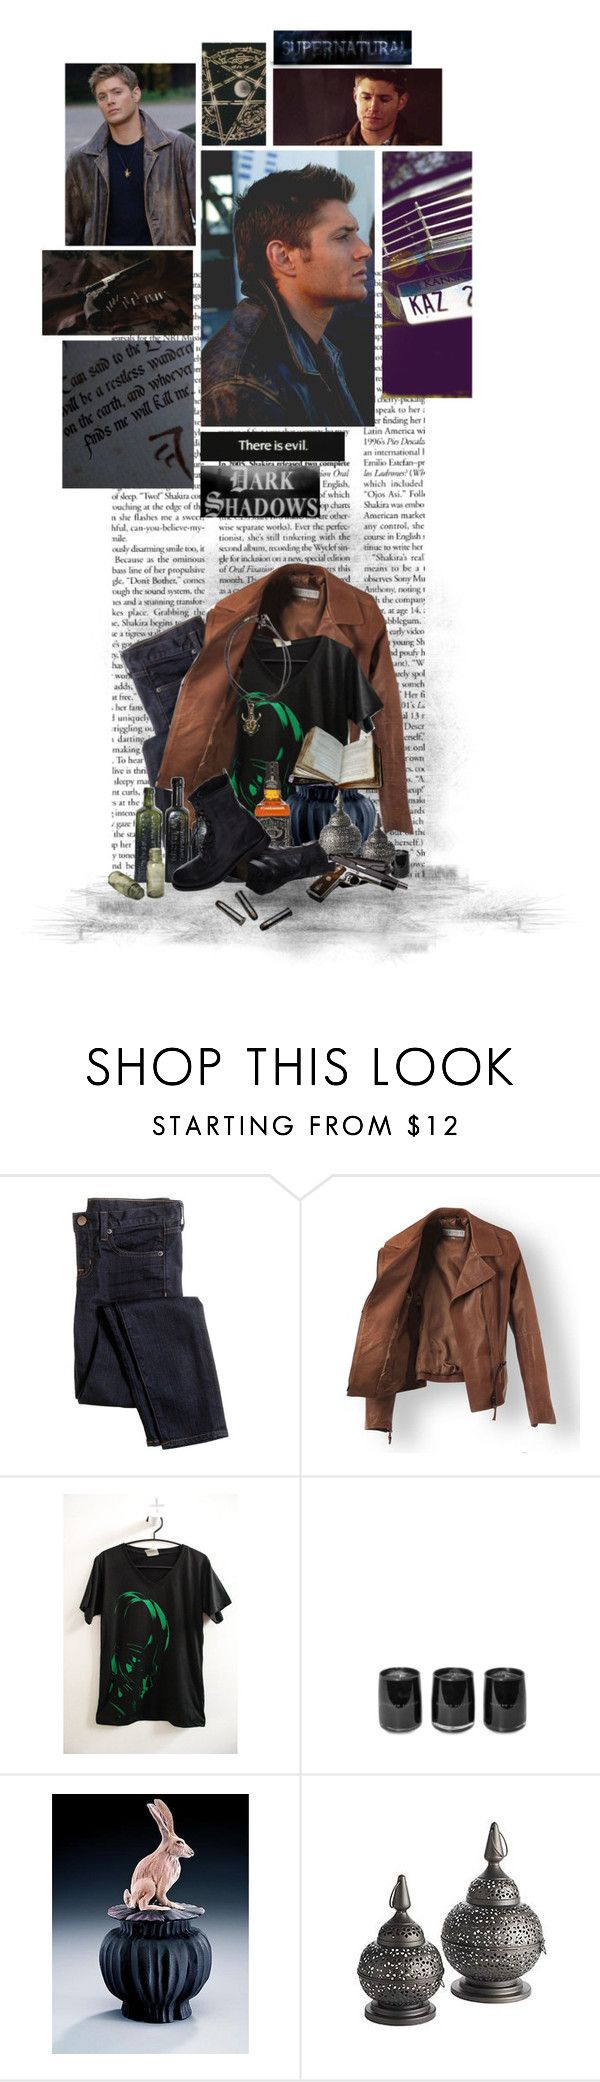 """.Dean Winchester's Style."" by the-sunflower ❤ liked on Polyvore featuring J.Crew, D.L. & Co., Nancy Y. Adams, Pier 1 Imports and H by Hudson"